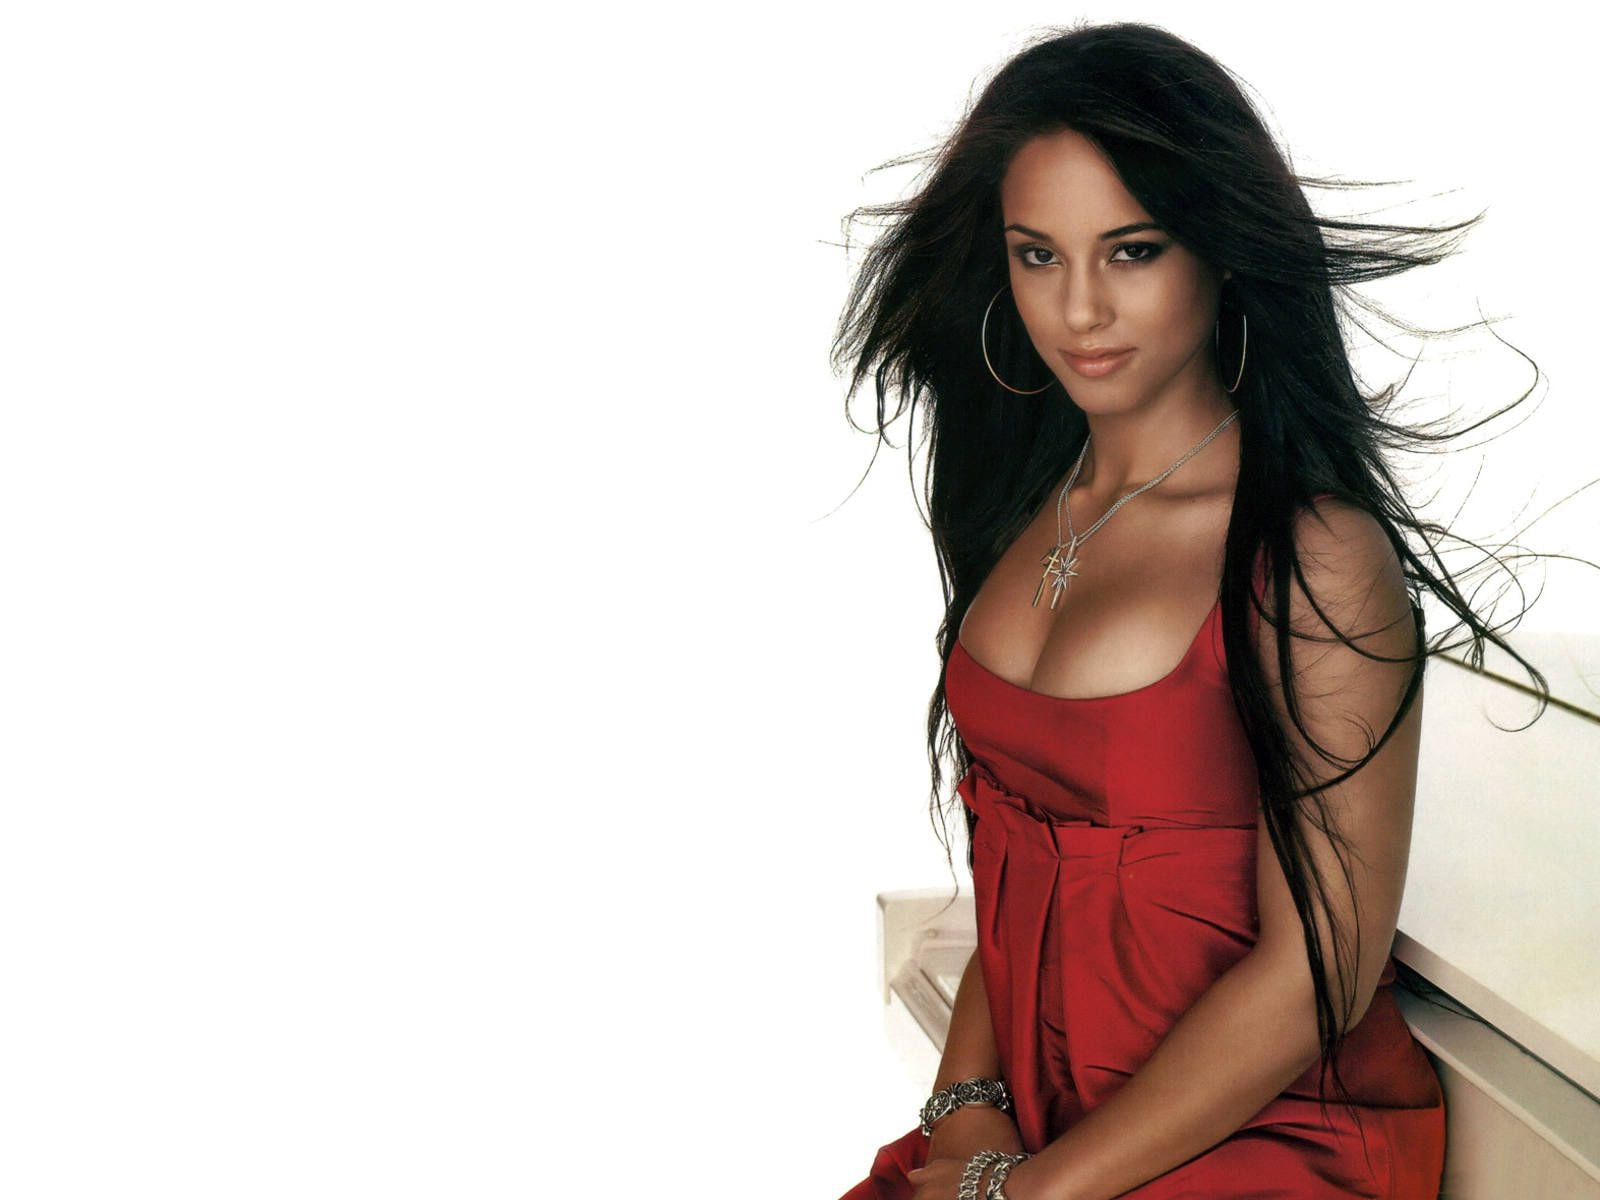 Pc Hd Car Wallpapers Free Download 31 Alicia Keys Wallpapers Hd Download